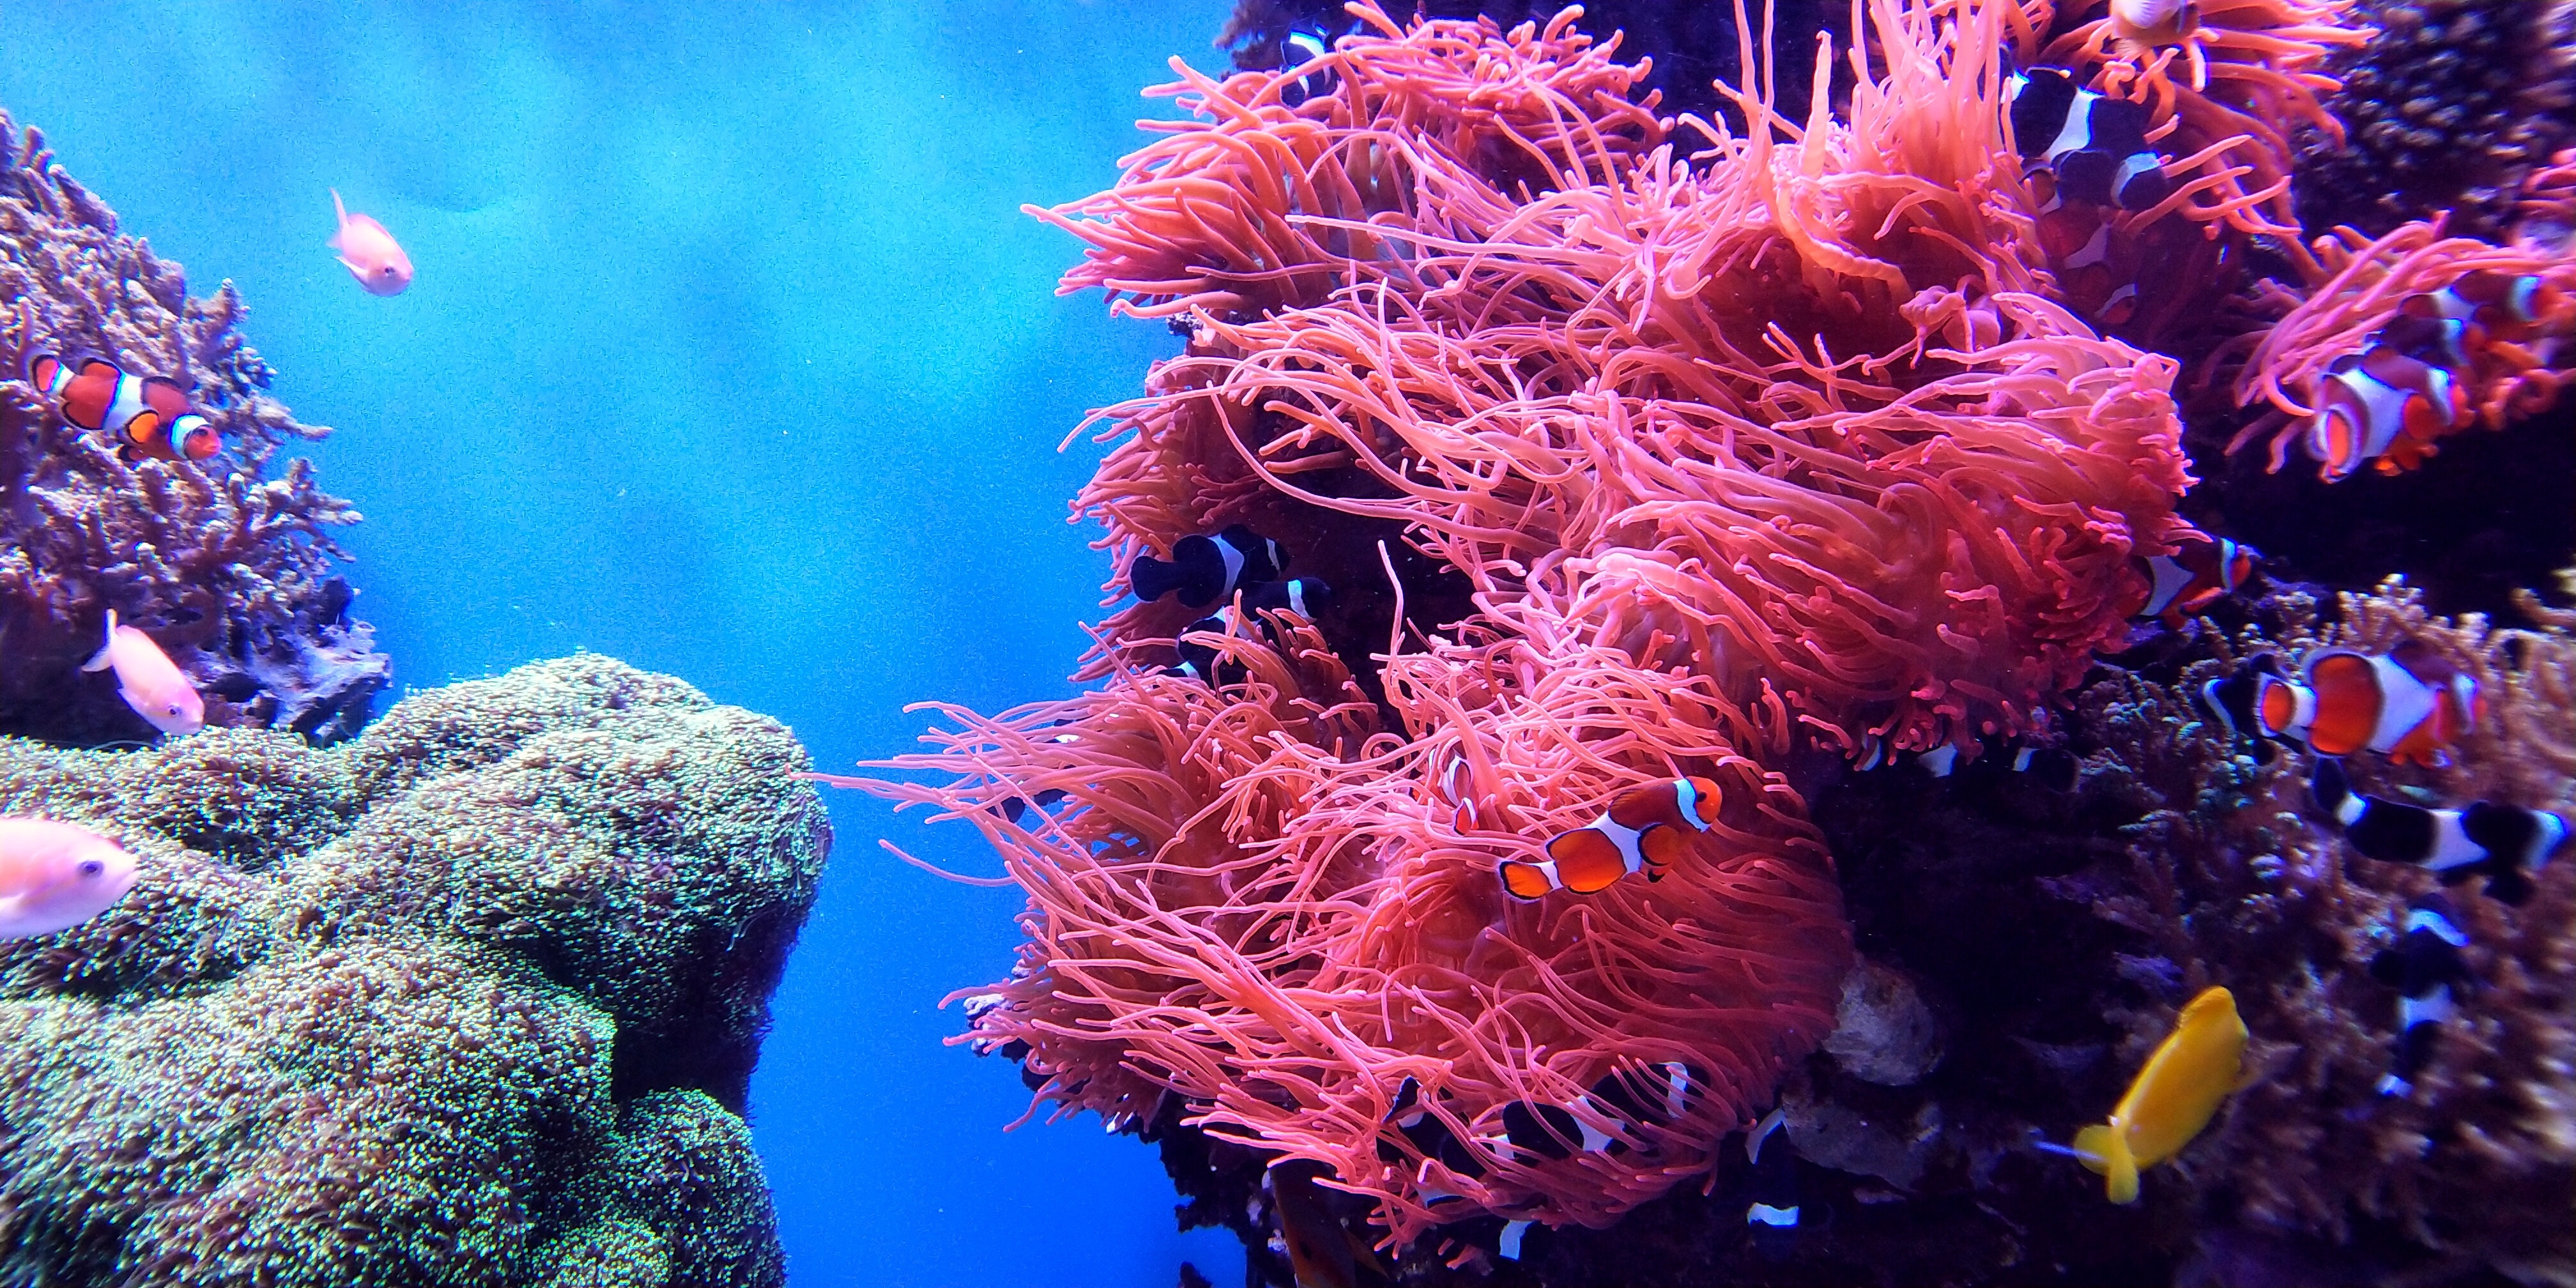 coral reef world reef day raw elements protect environment ocean sea marine life